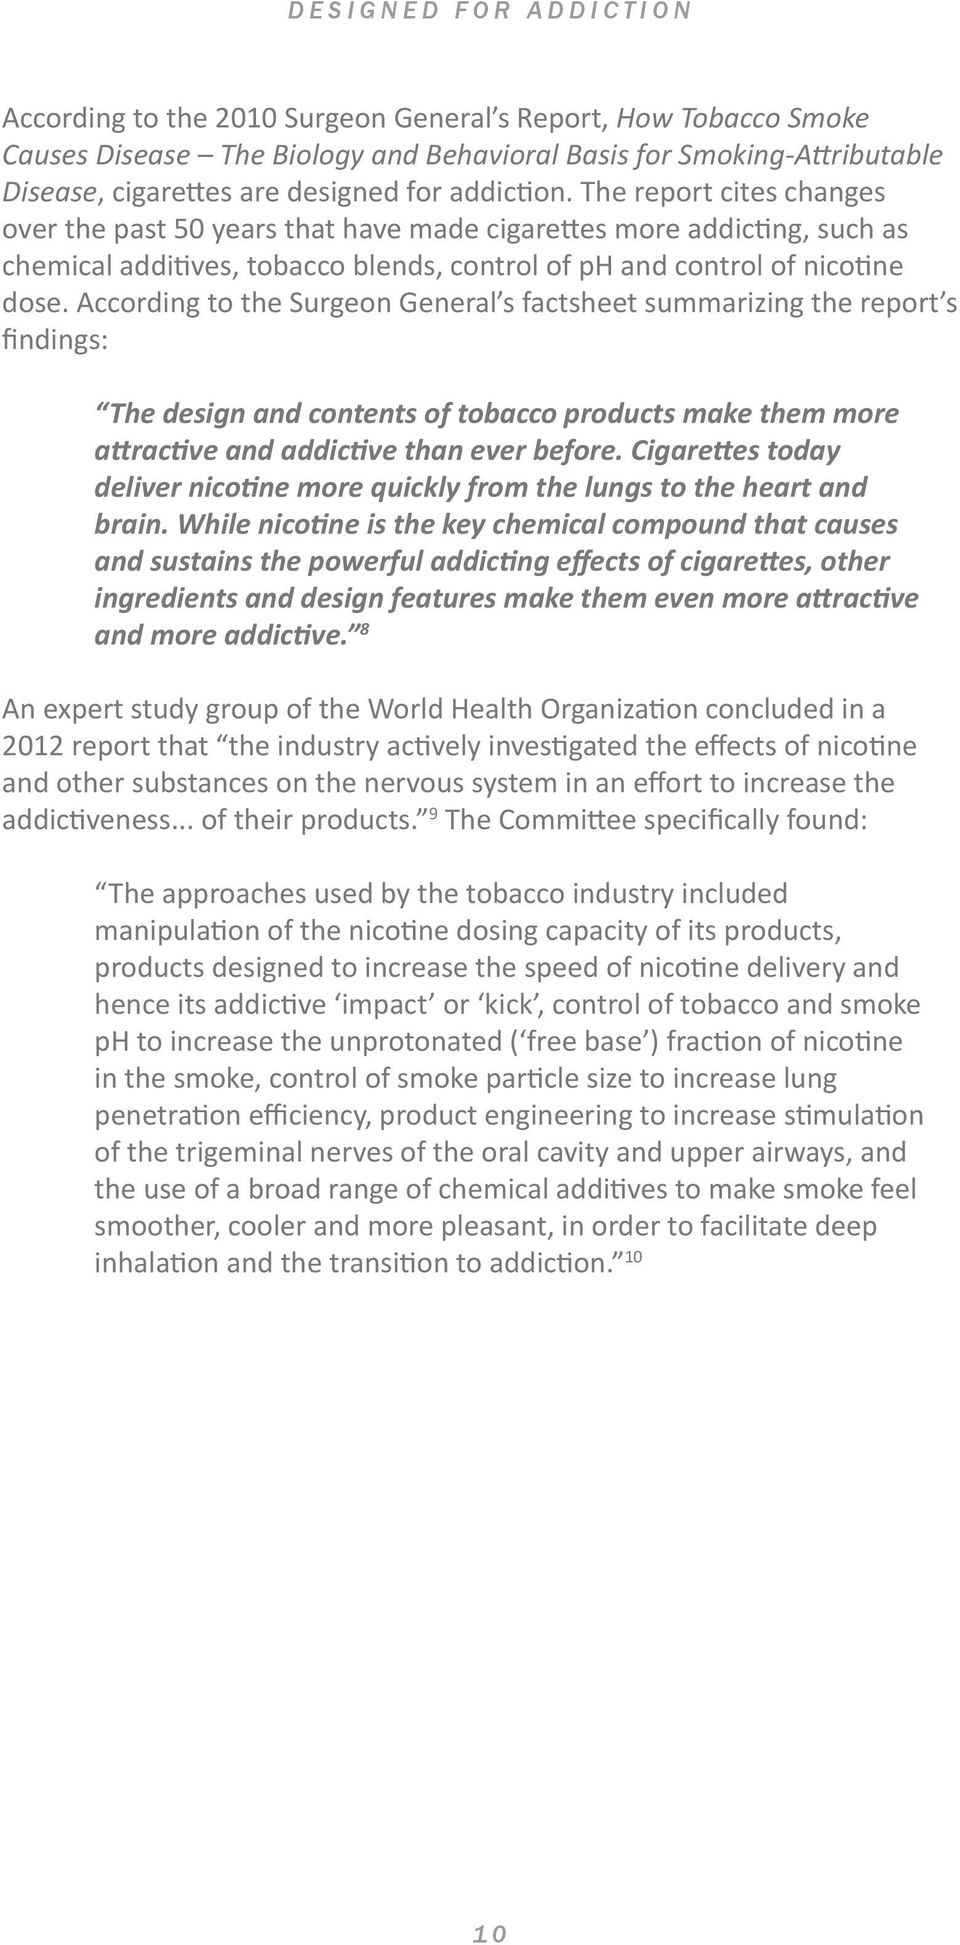 According to the Surgeon General s factsheet summarizing the report s findings: The design and contents of tobacco products make them more attractive and addictive than ever before.